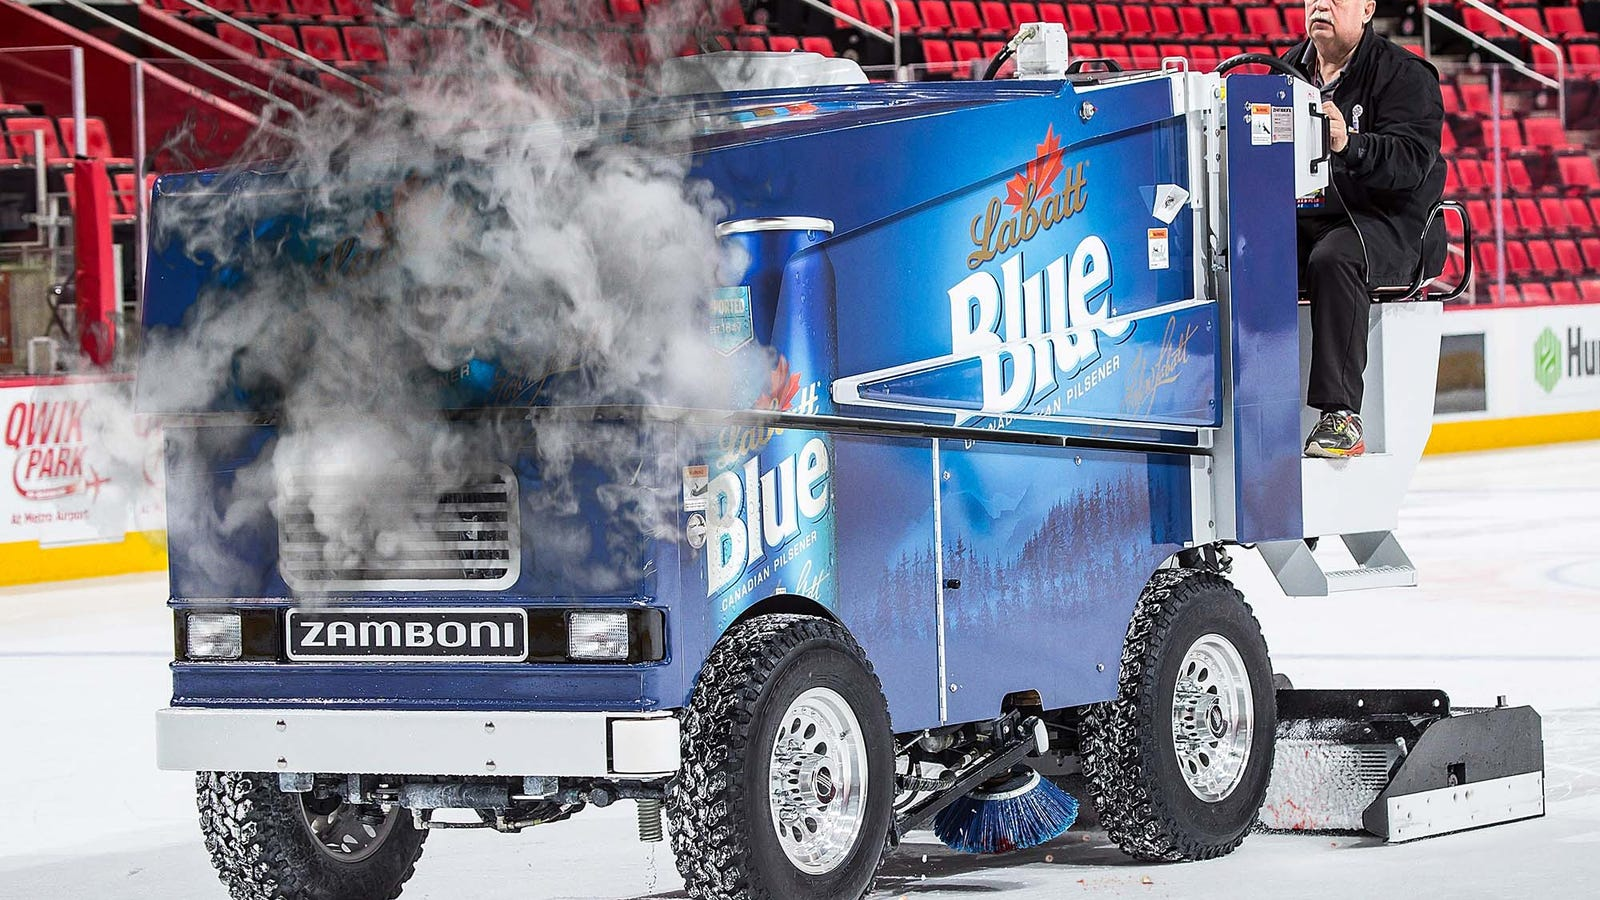 Zamboni Jams Up After Running Over Large Patch Of Loose Teeth